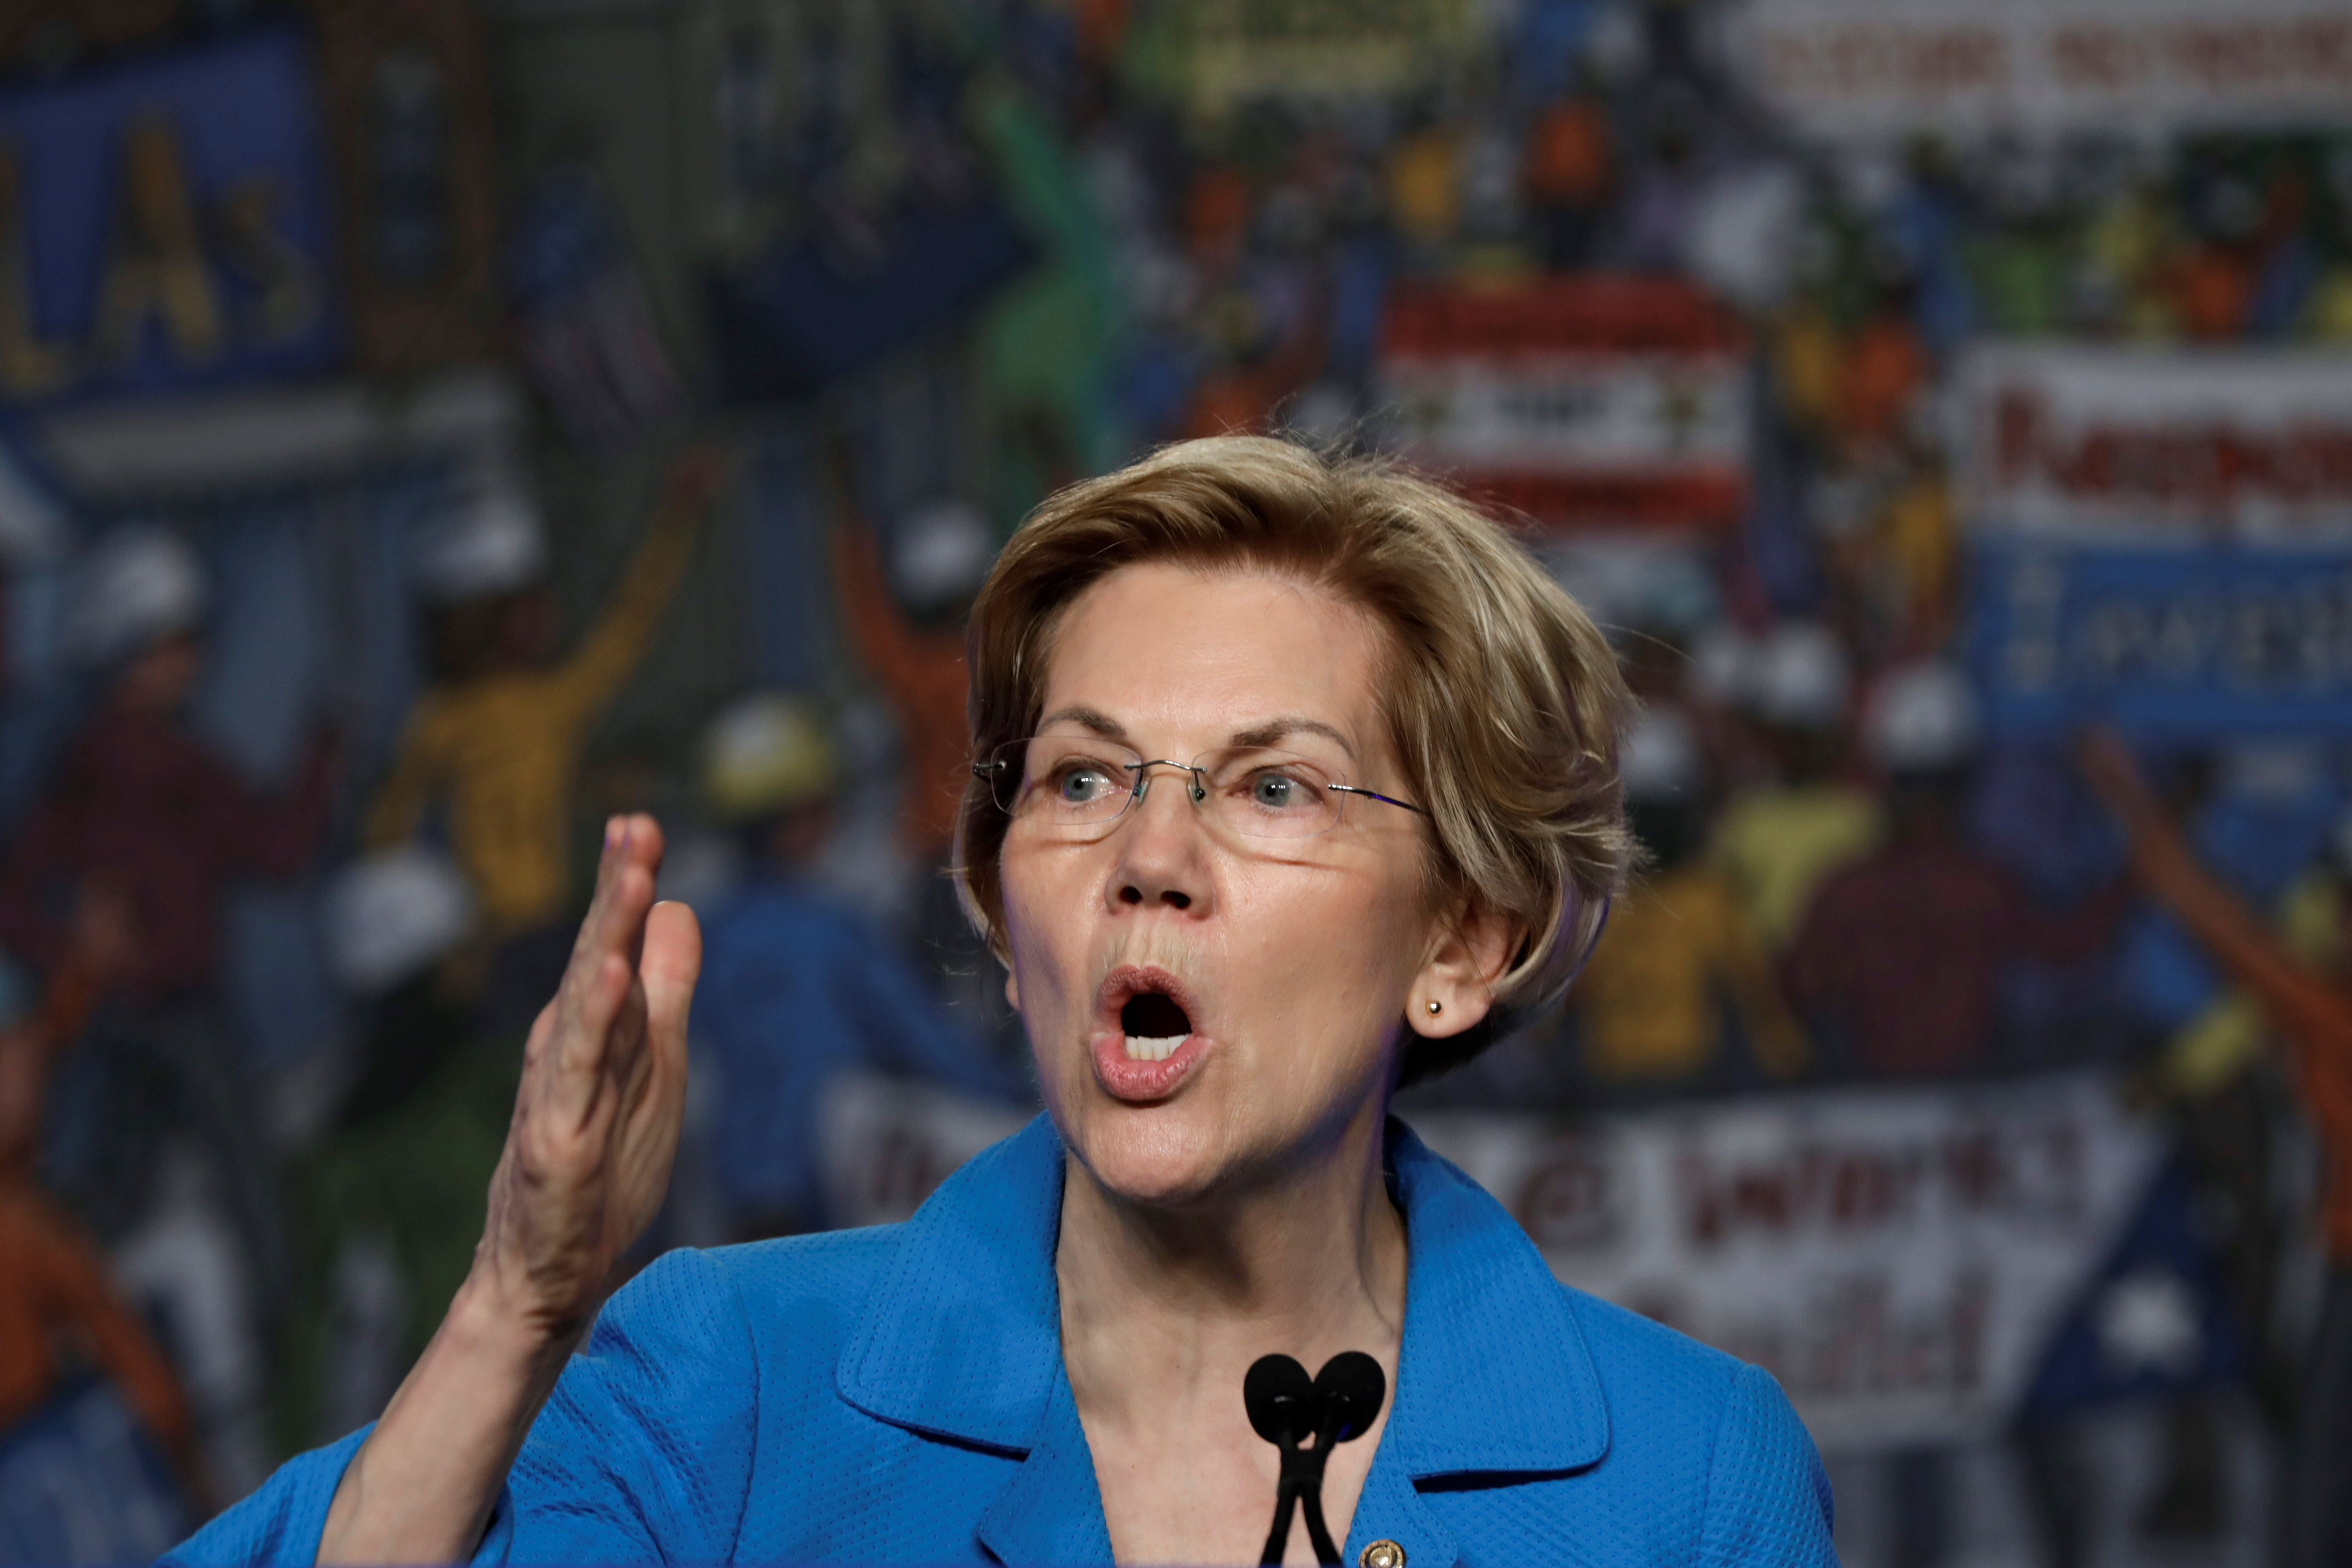 Senator Elizabeth Warren speaks at NABTU legislative conference in Washington